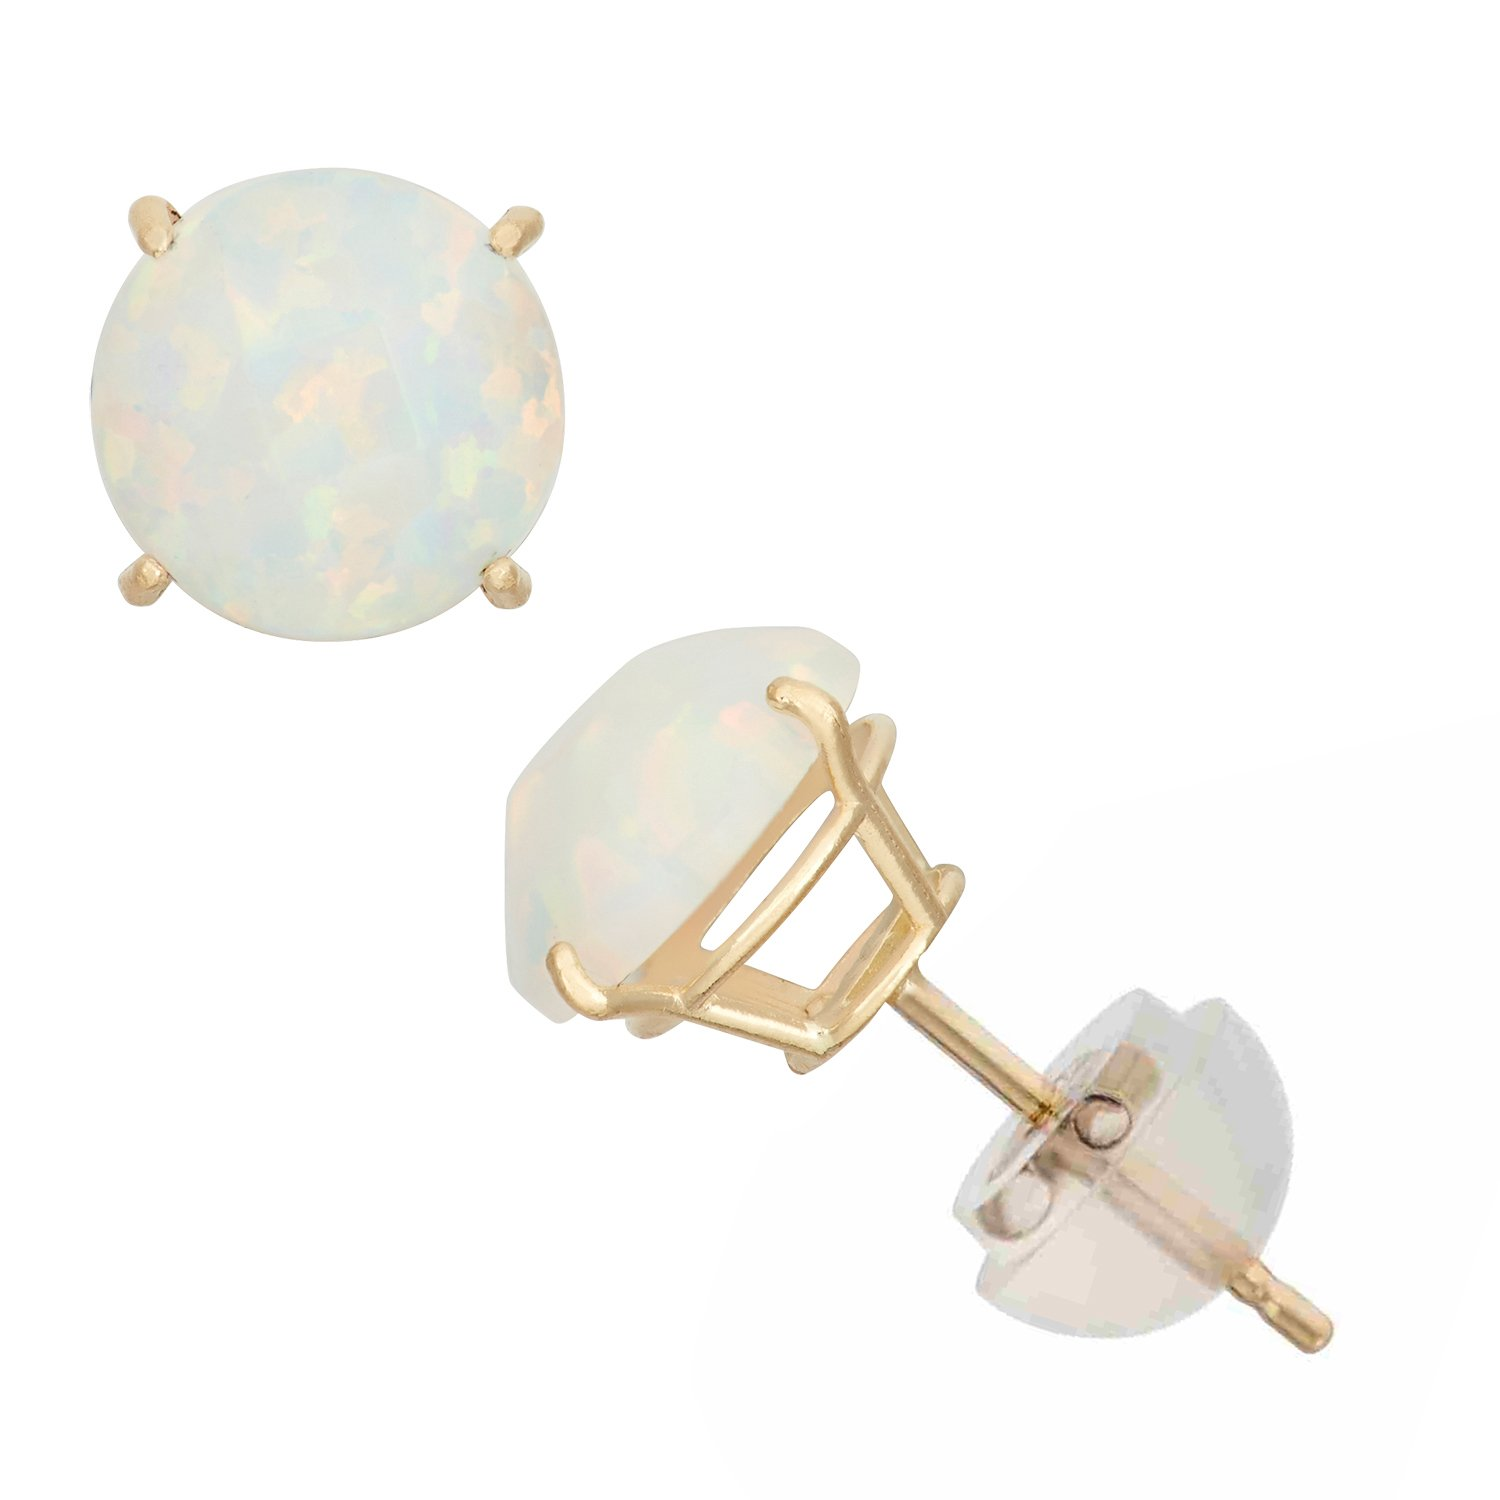 Synthetic Opal Round Stud Earrings in 10K Yellow Gold, 6mm, Comfort Fit